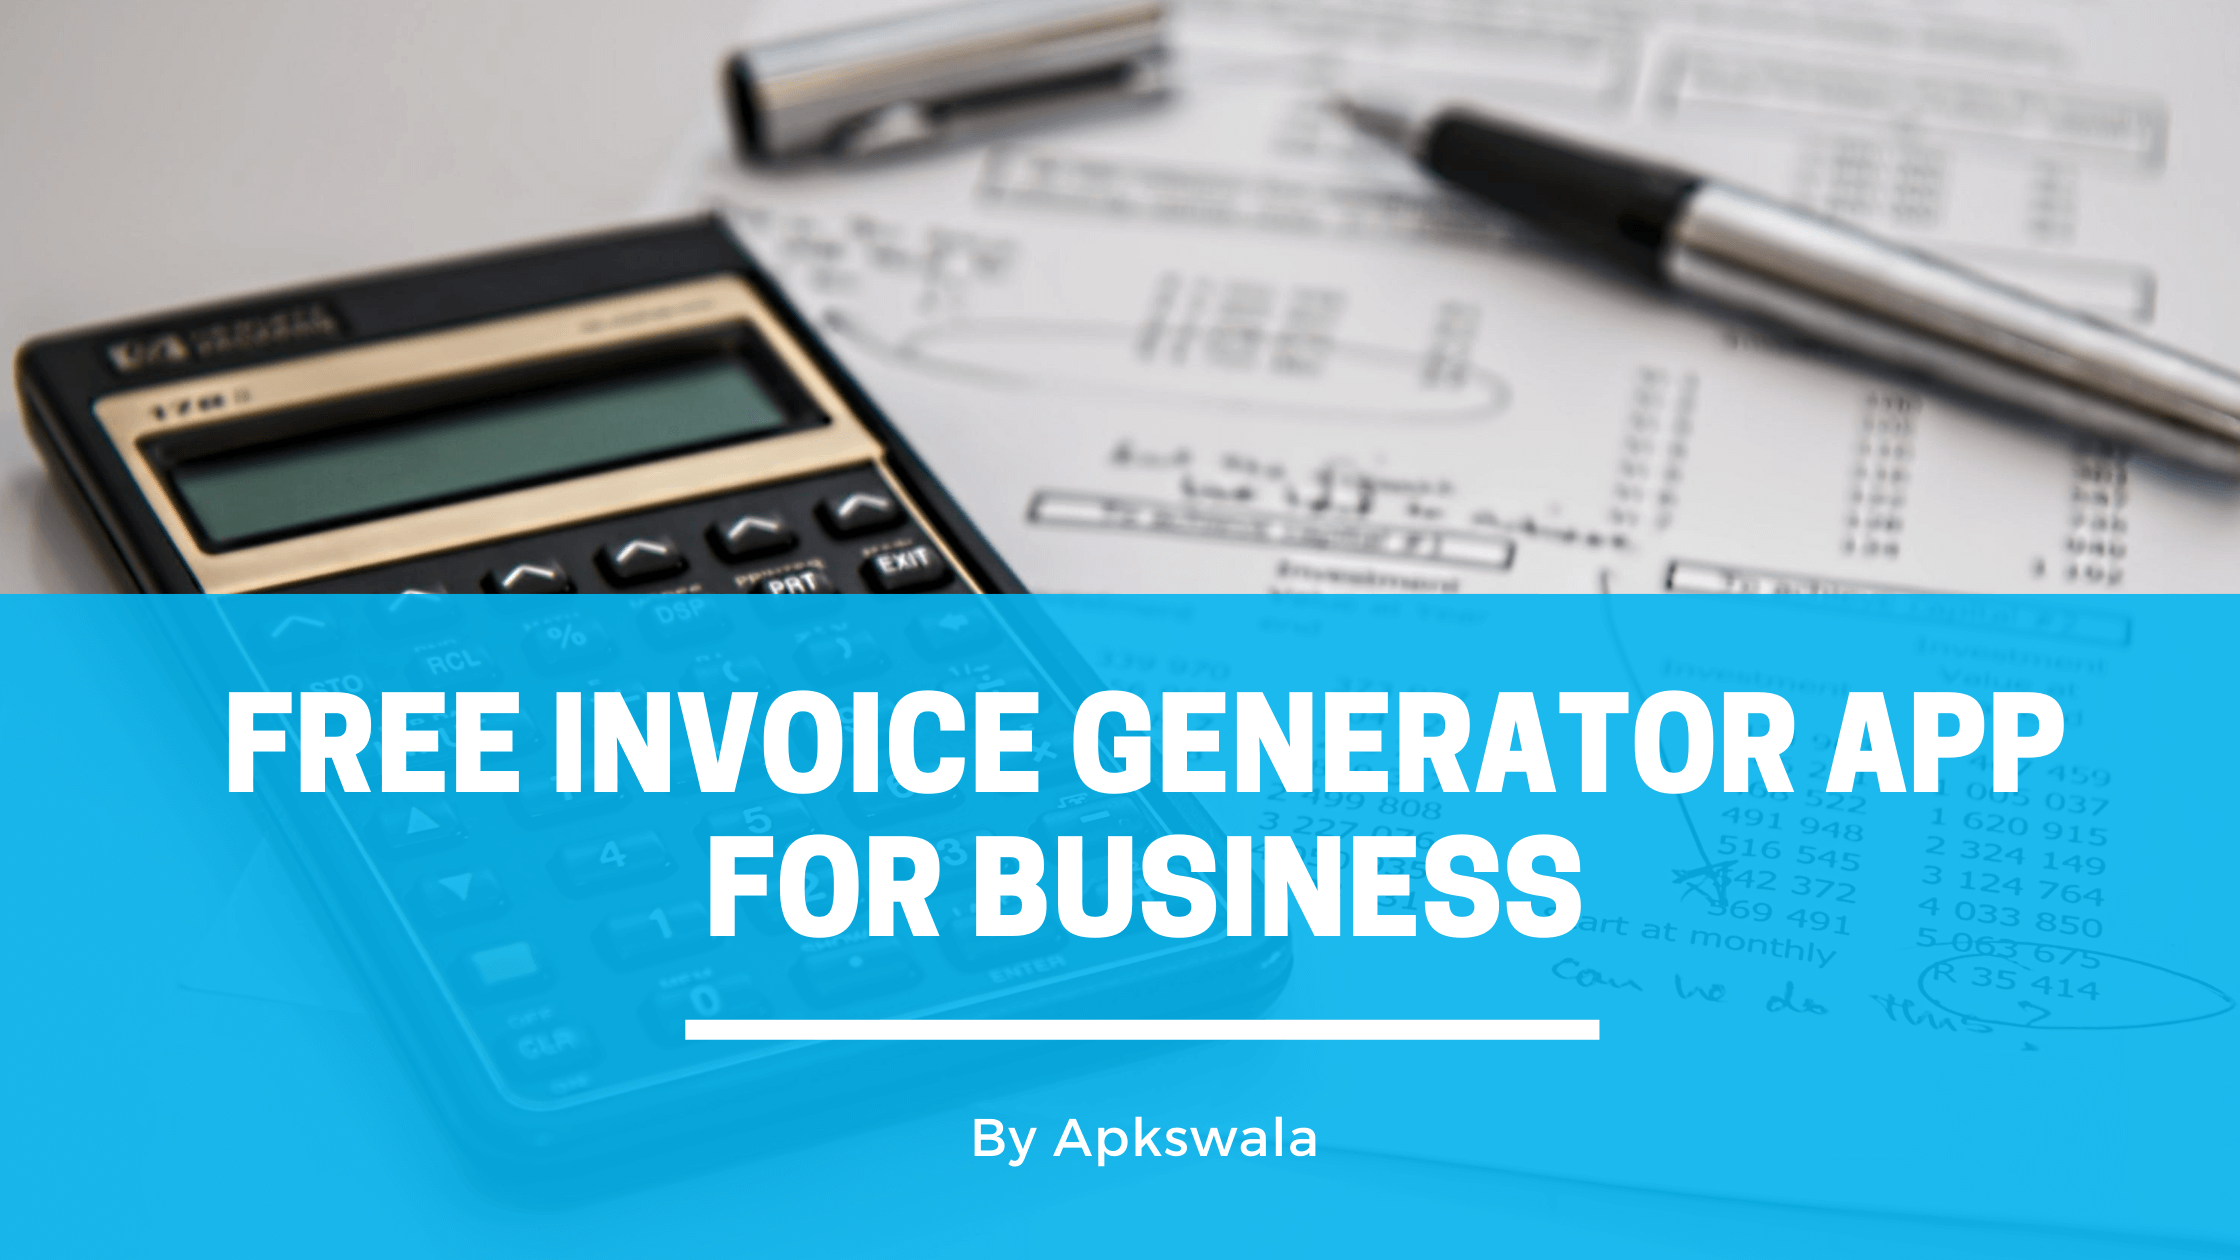 Free invoice Generator app for Business